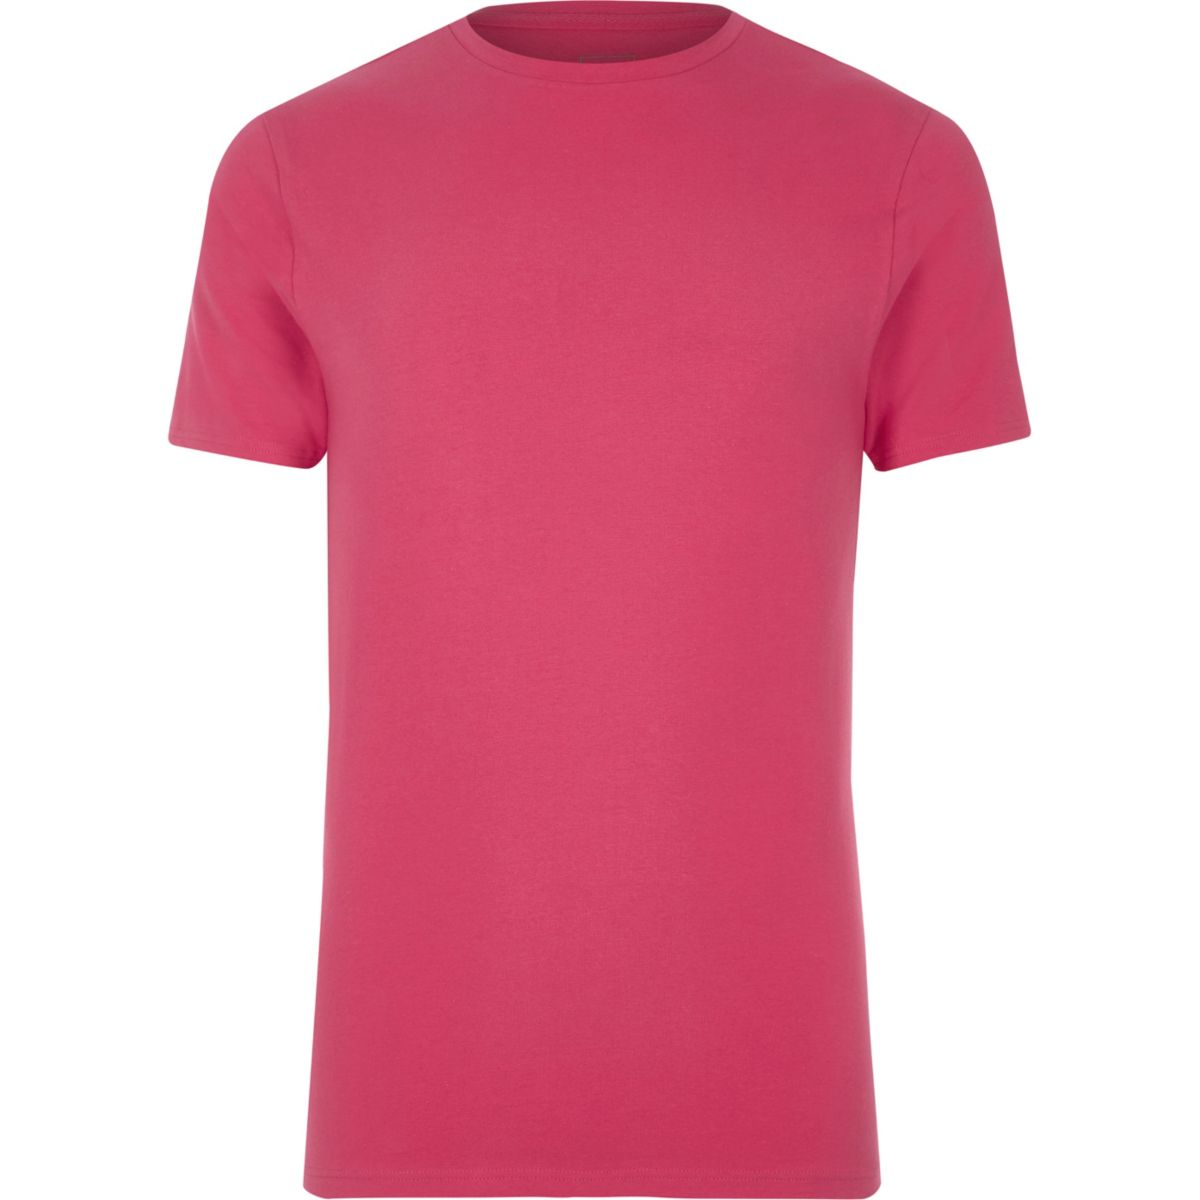 Pink crew neck muscle fit T-shirt